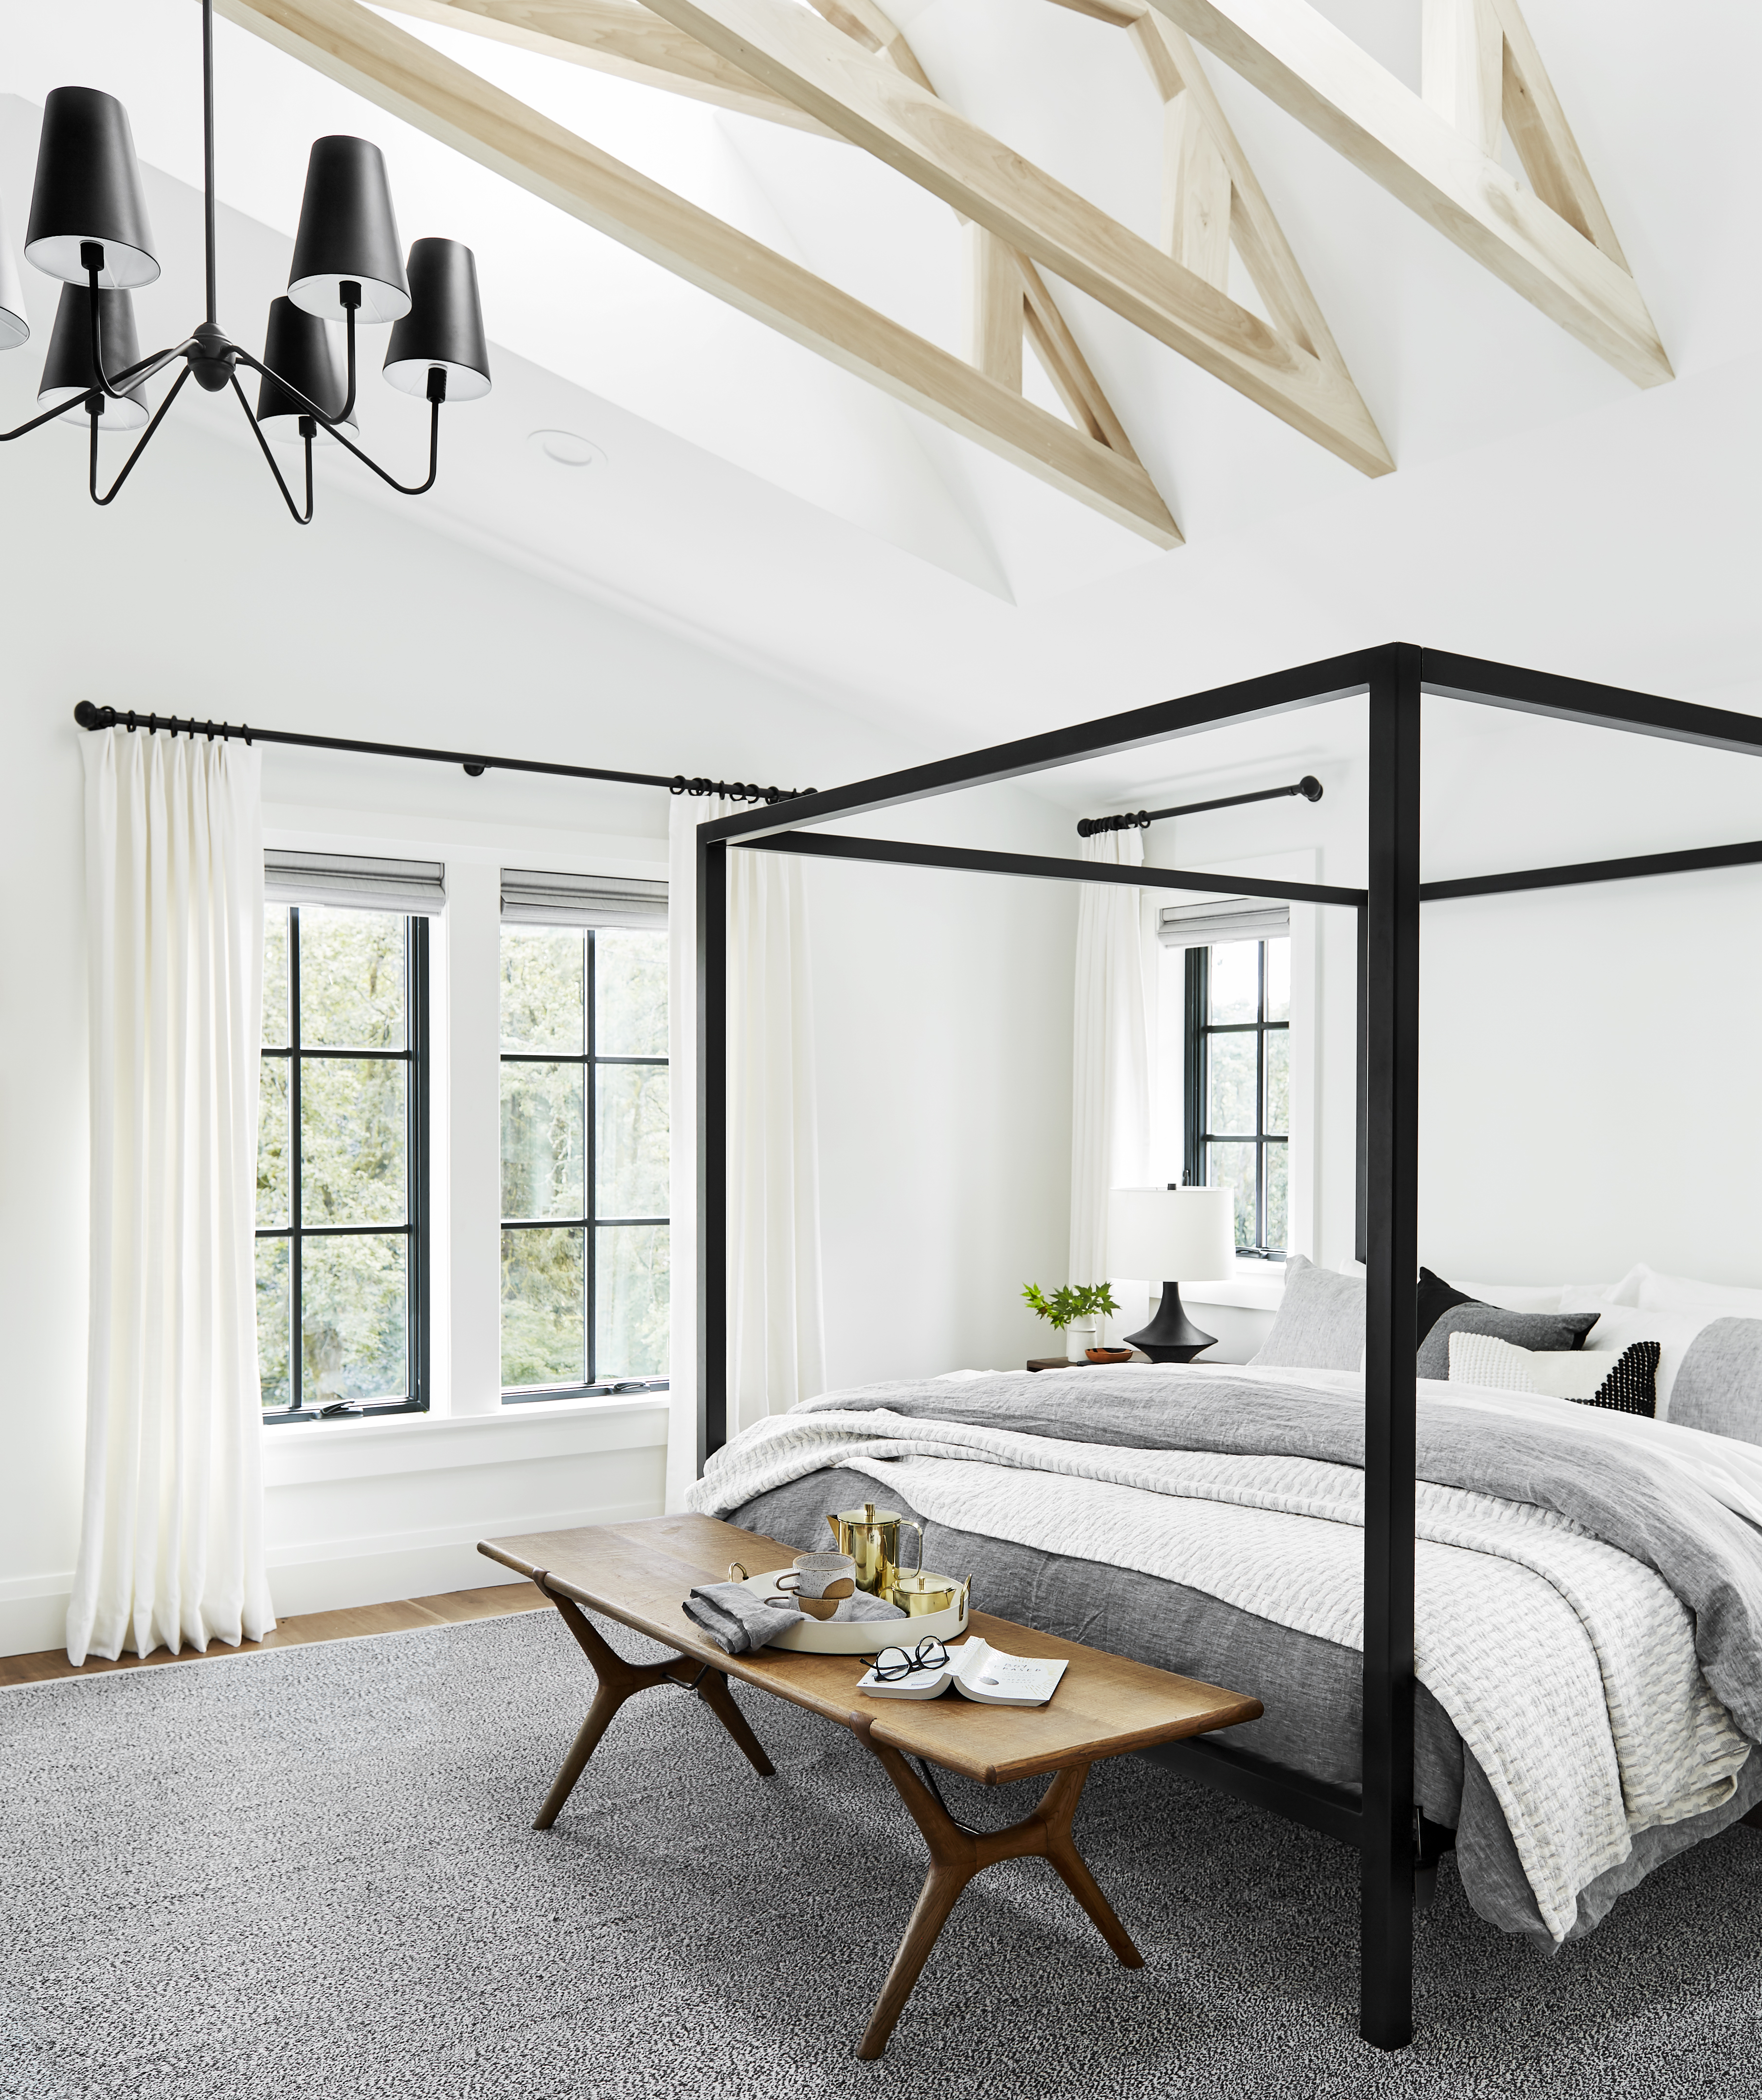 How to Make Your Bedroom Just a Little Bit Extra? Hang a Chandelier